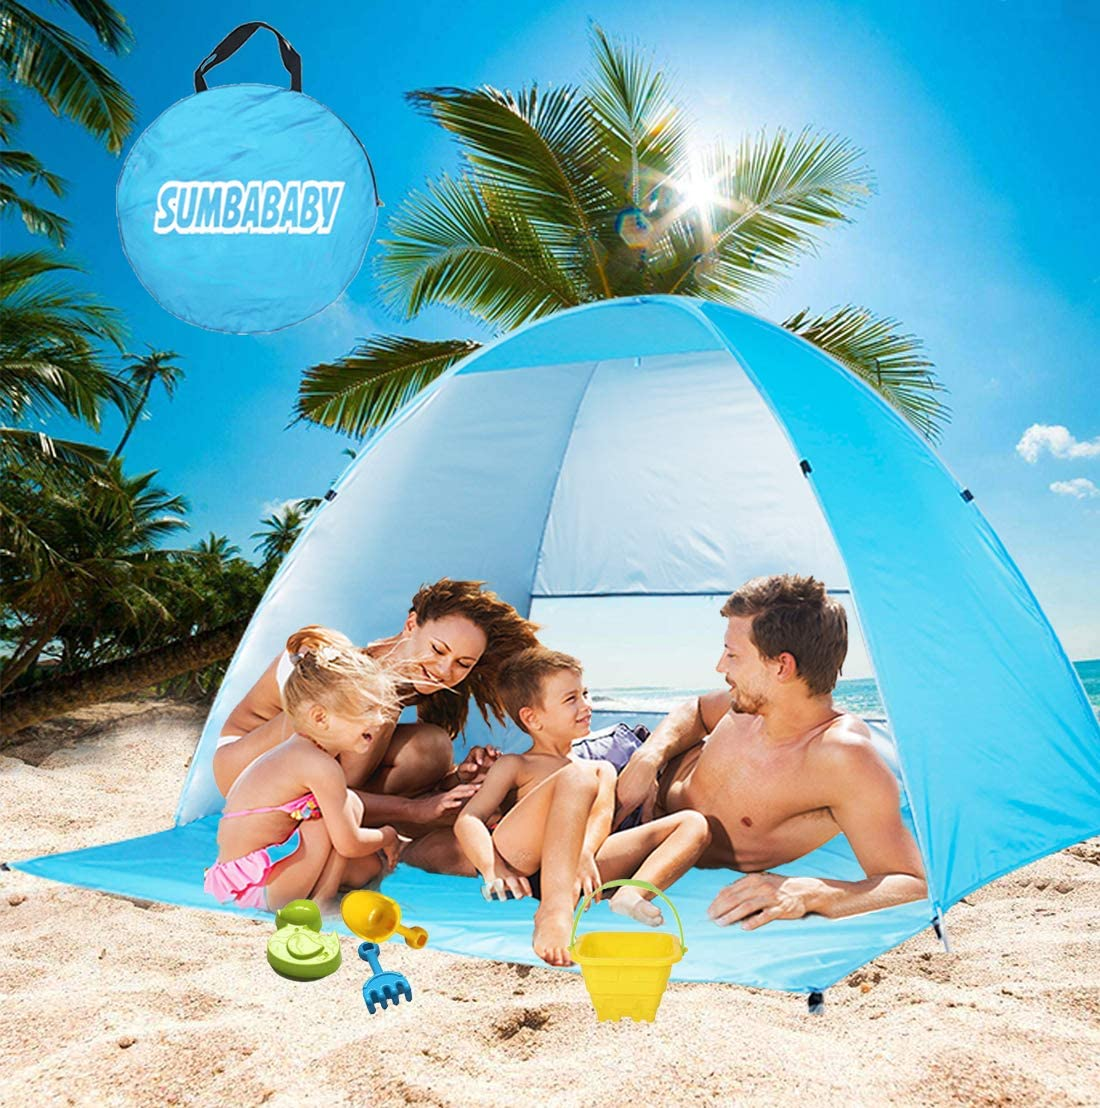 Amazon Com Large Beach Tent Uv Pop Up Sun Shelter Tents Big Portable Automatic Sun Umbrella Waterproof Windproof Instant Easy Outdoor Cabana Fit 3 4 Persons For Camping Hiking Canopy With Carry Bag Blue Sports